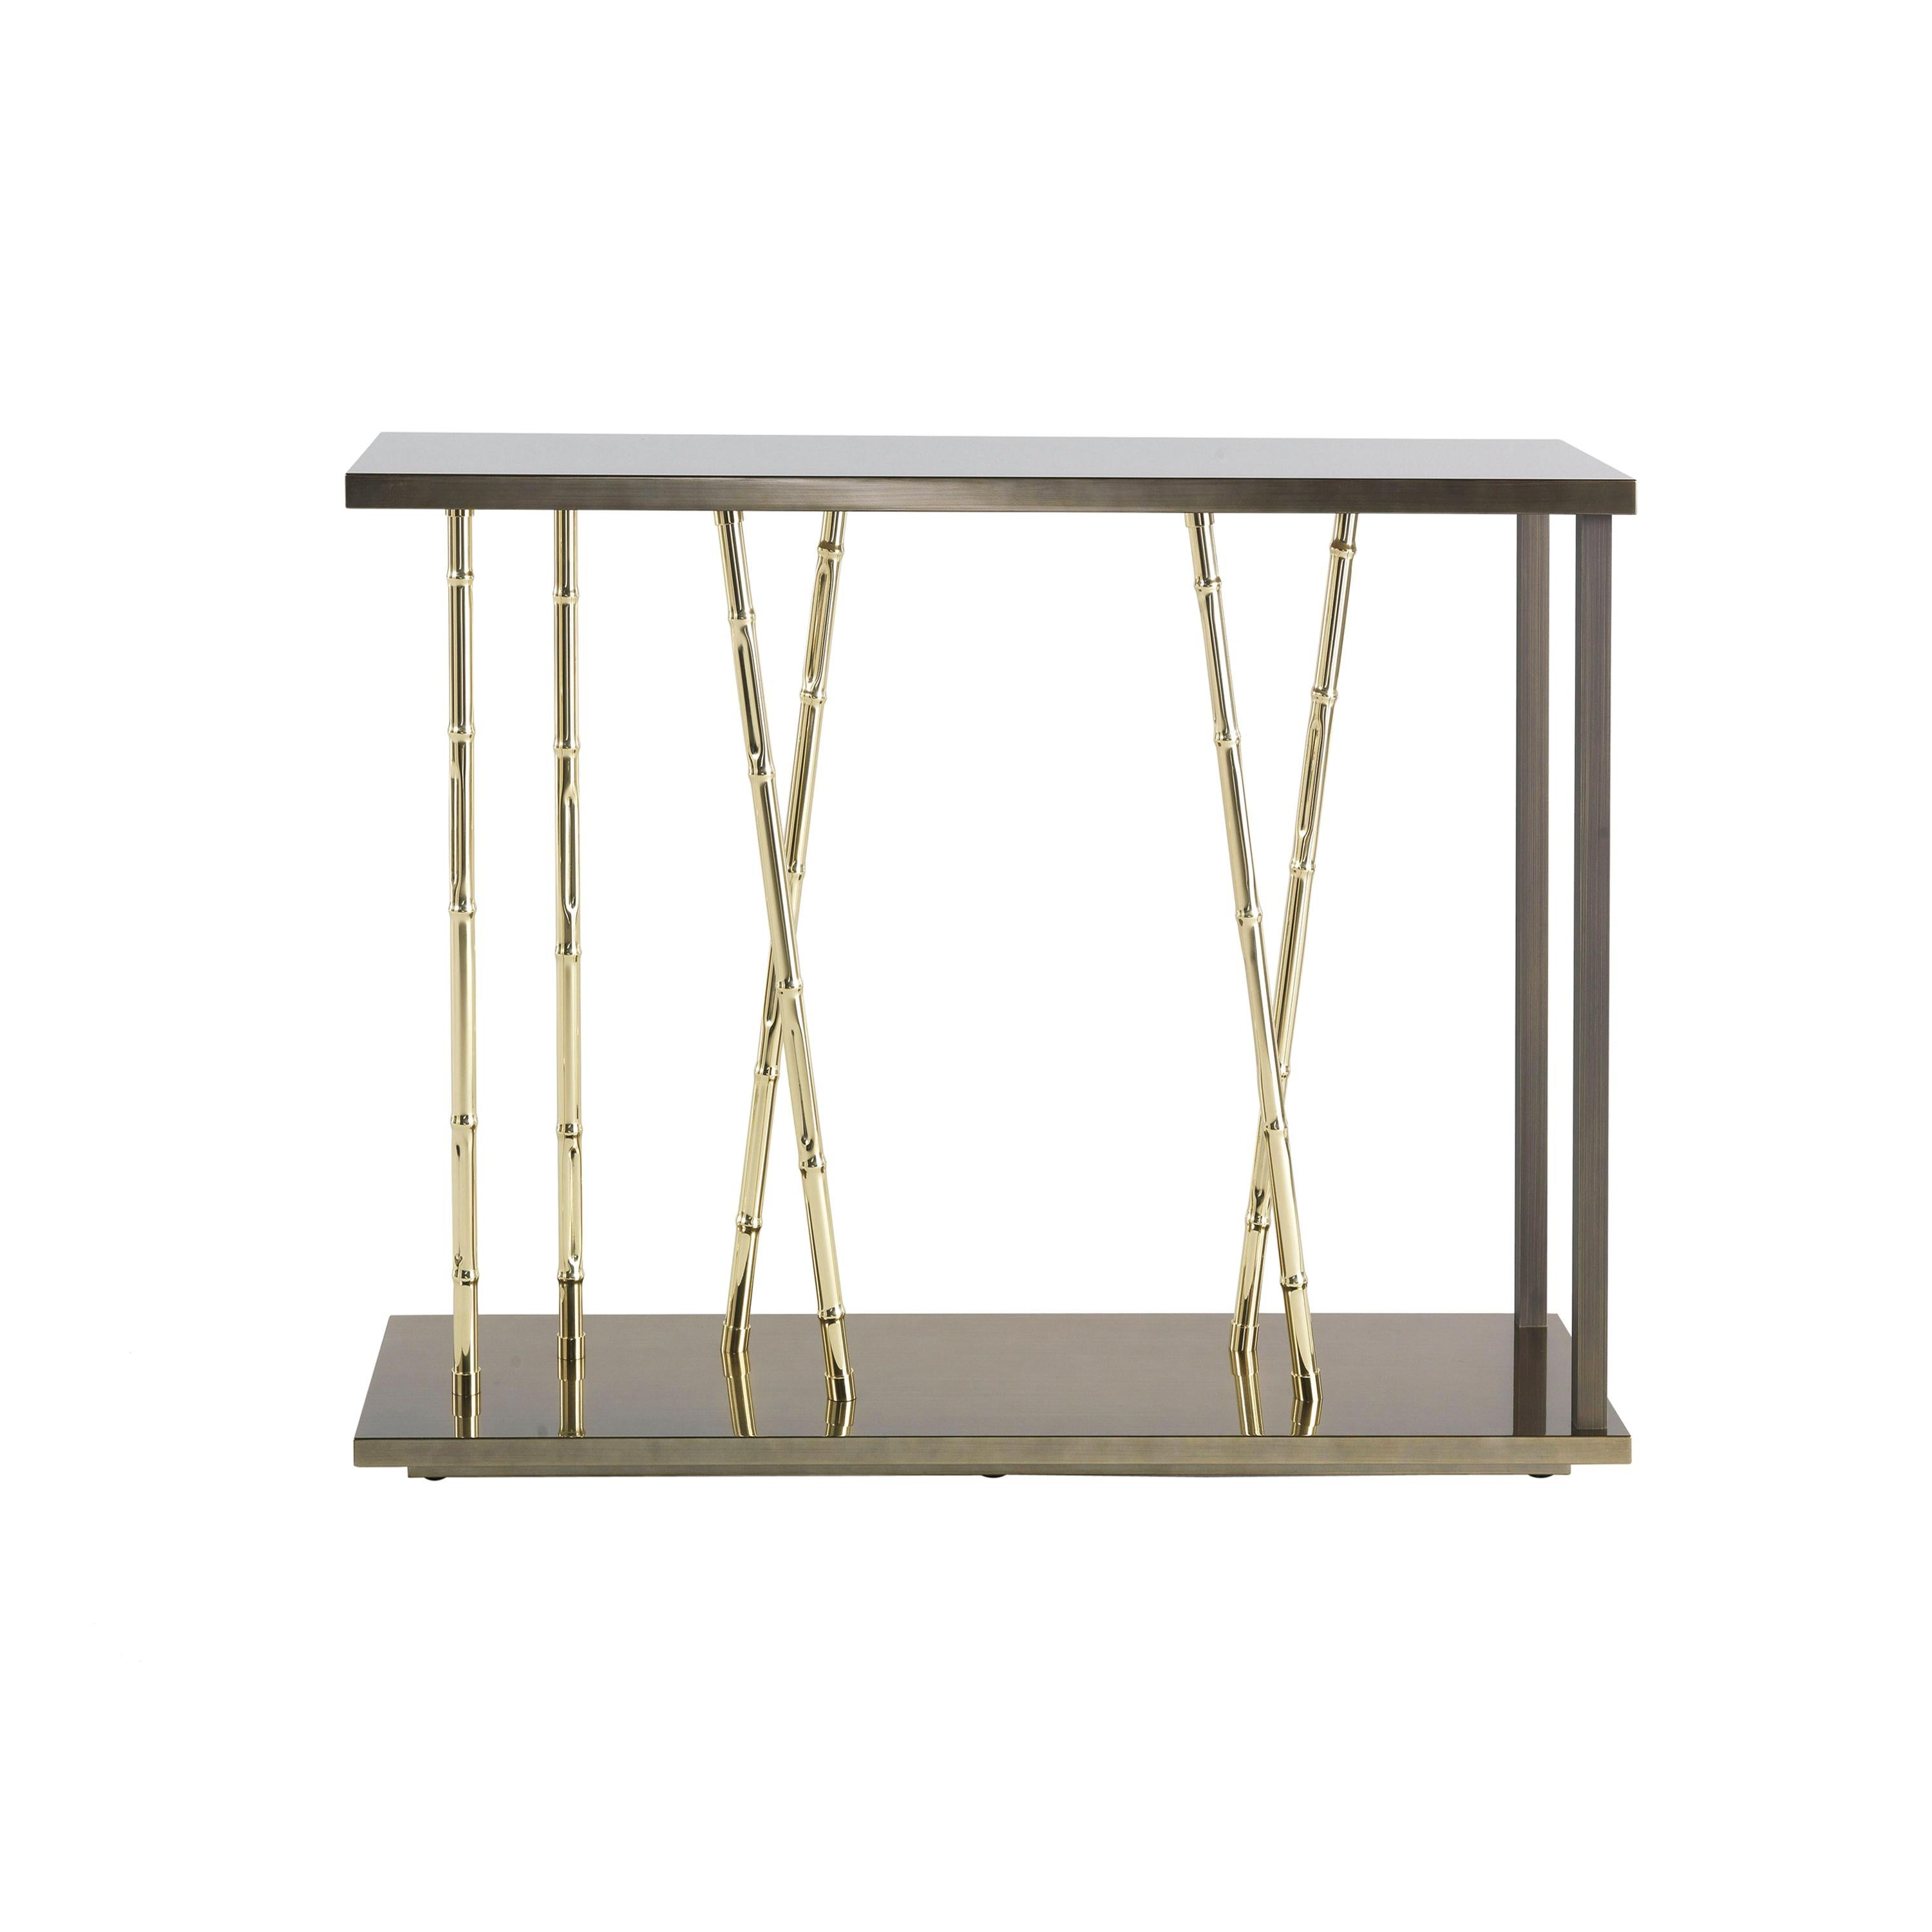 Etro Home Interiors Taxila Console in Bronze Metal and Lacquer Wood